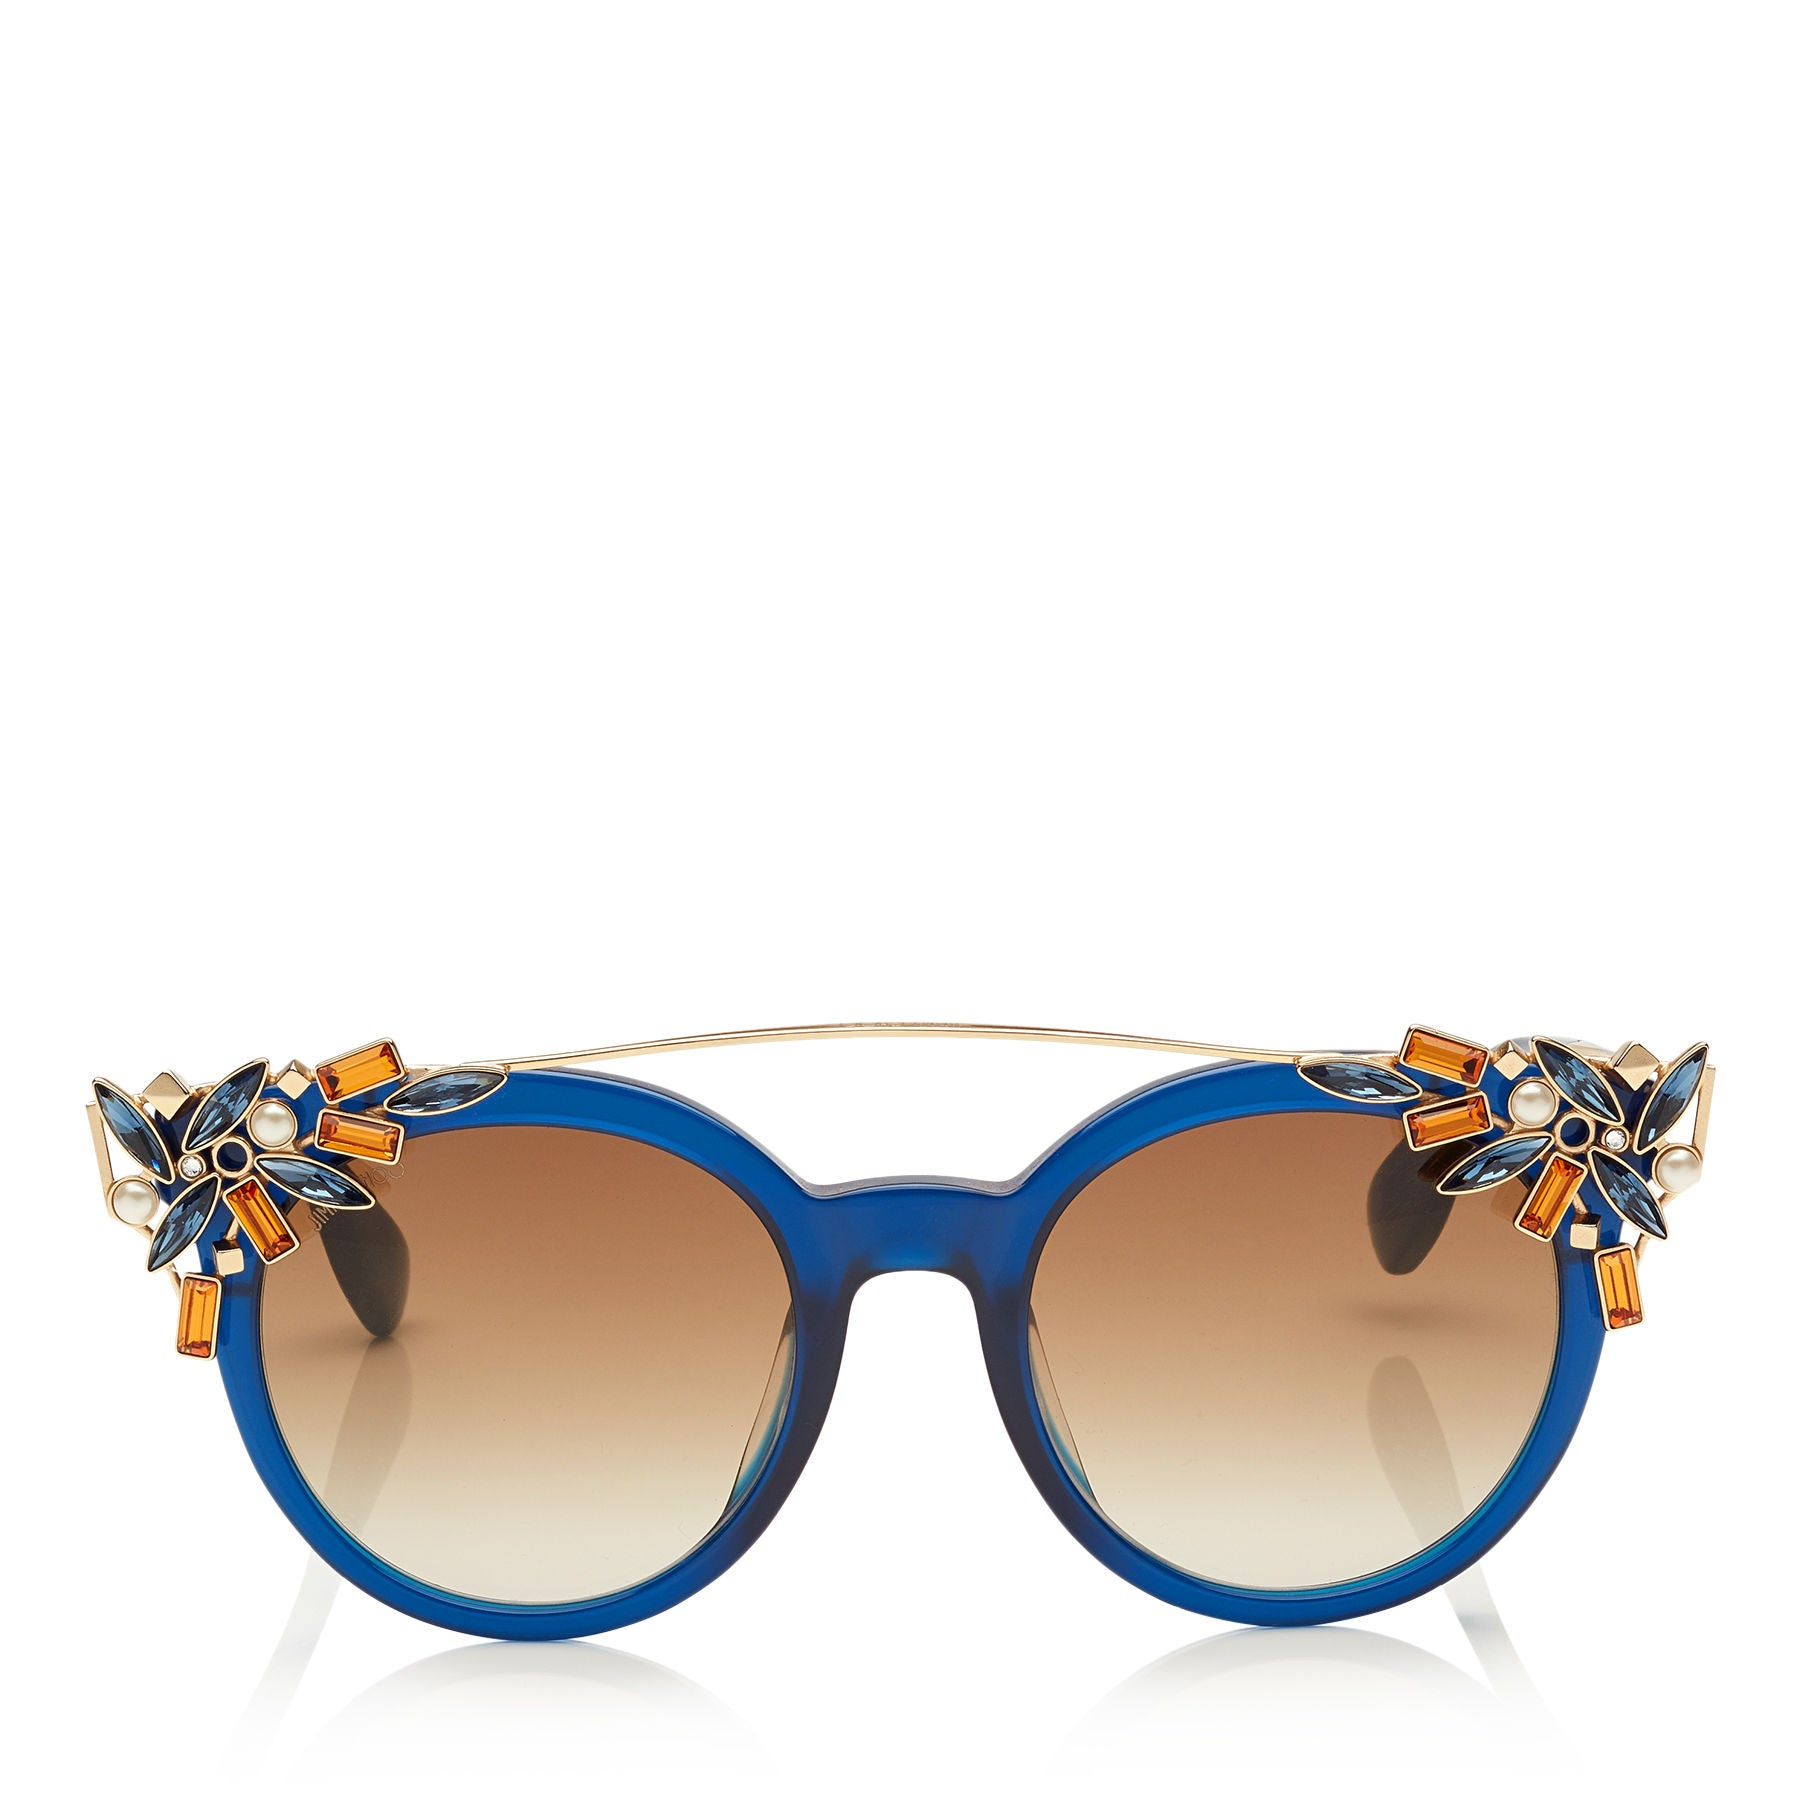 JIMMY CHOO Vivy Blue and Gold Round Framed Sunglasses with ...